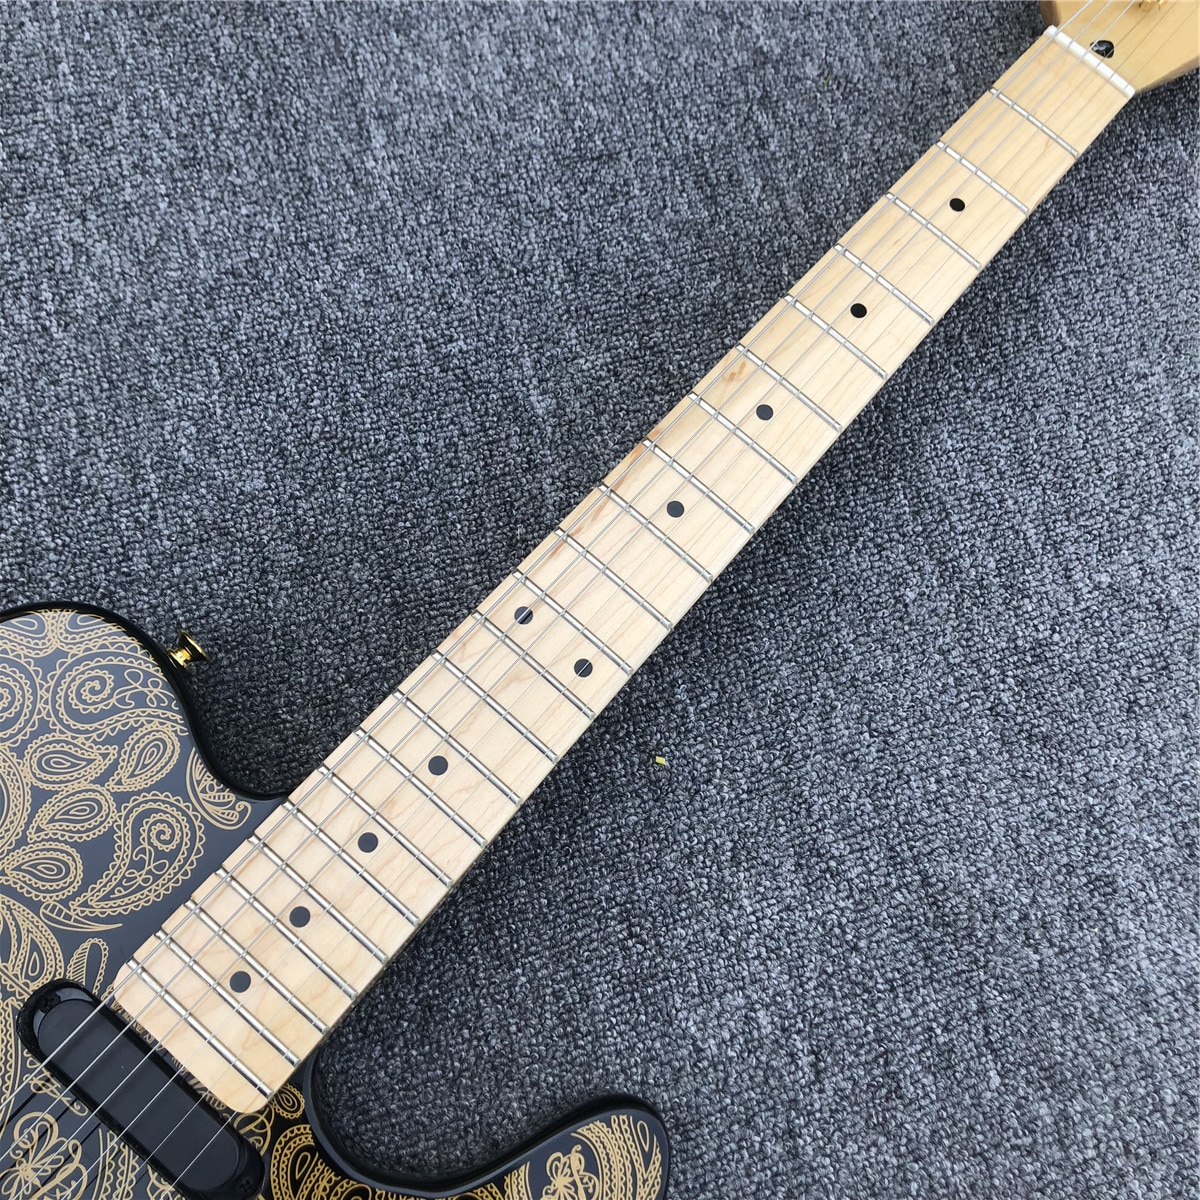 Golden Pattern Solid wood TL Electric Guitar with Maple Fingerboard enlarge